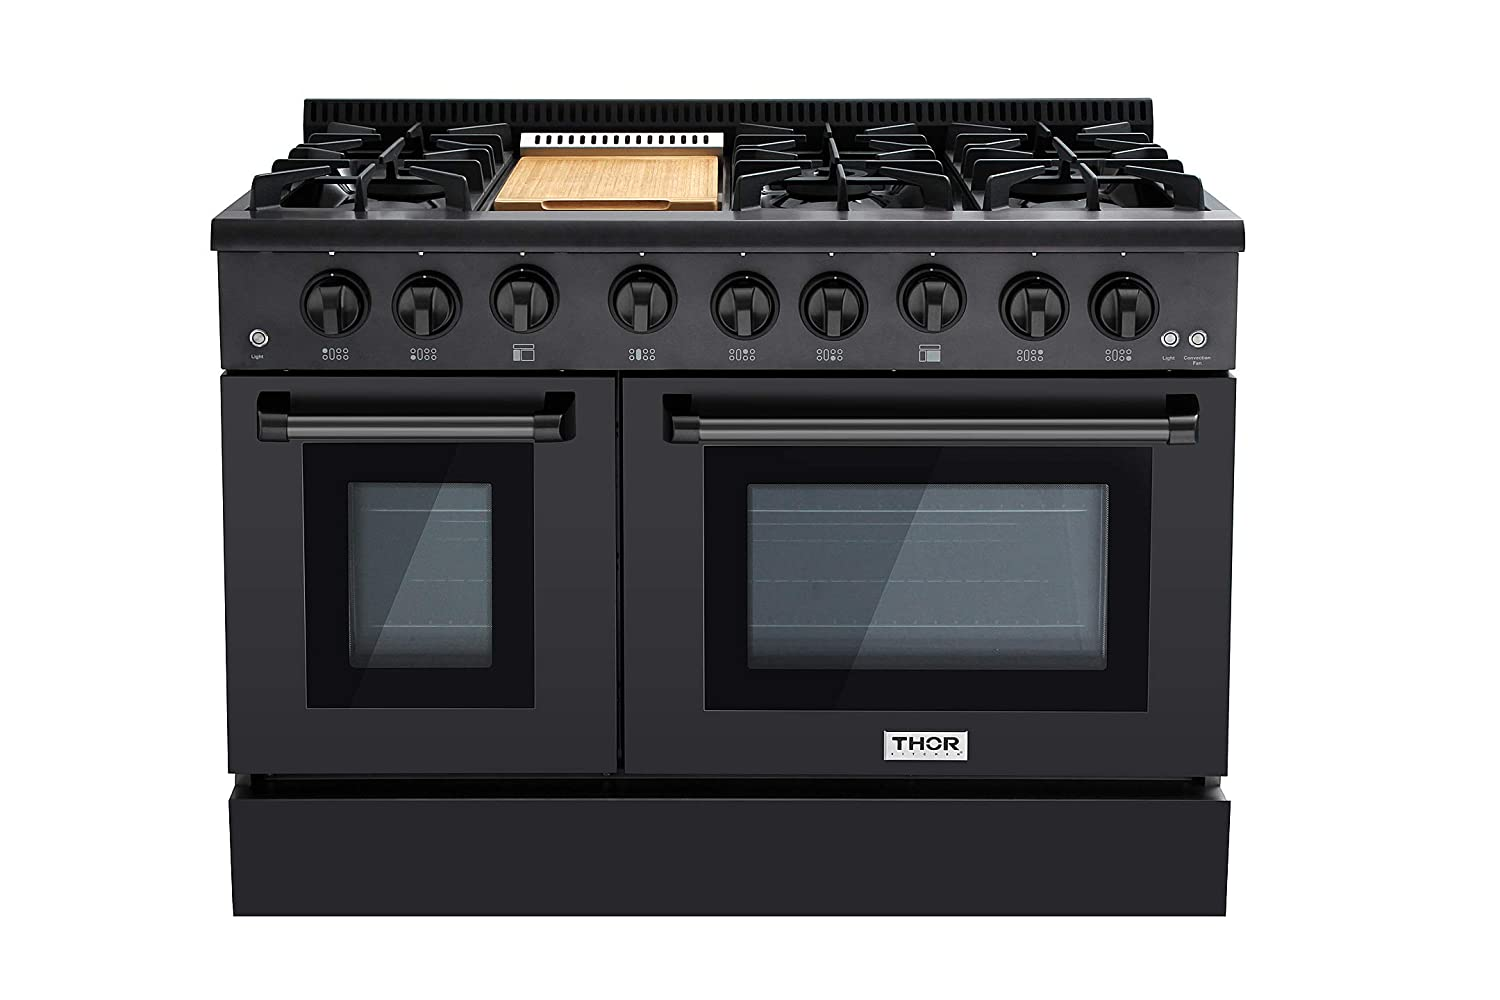 Thor 48 Gas Range Professional Kitchen Style Natural Gas, Propane Optional Black Stainless Steel Thor kitchen